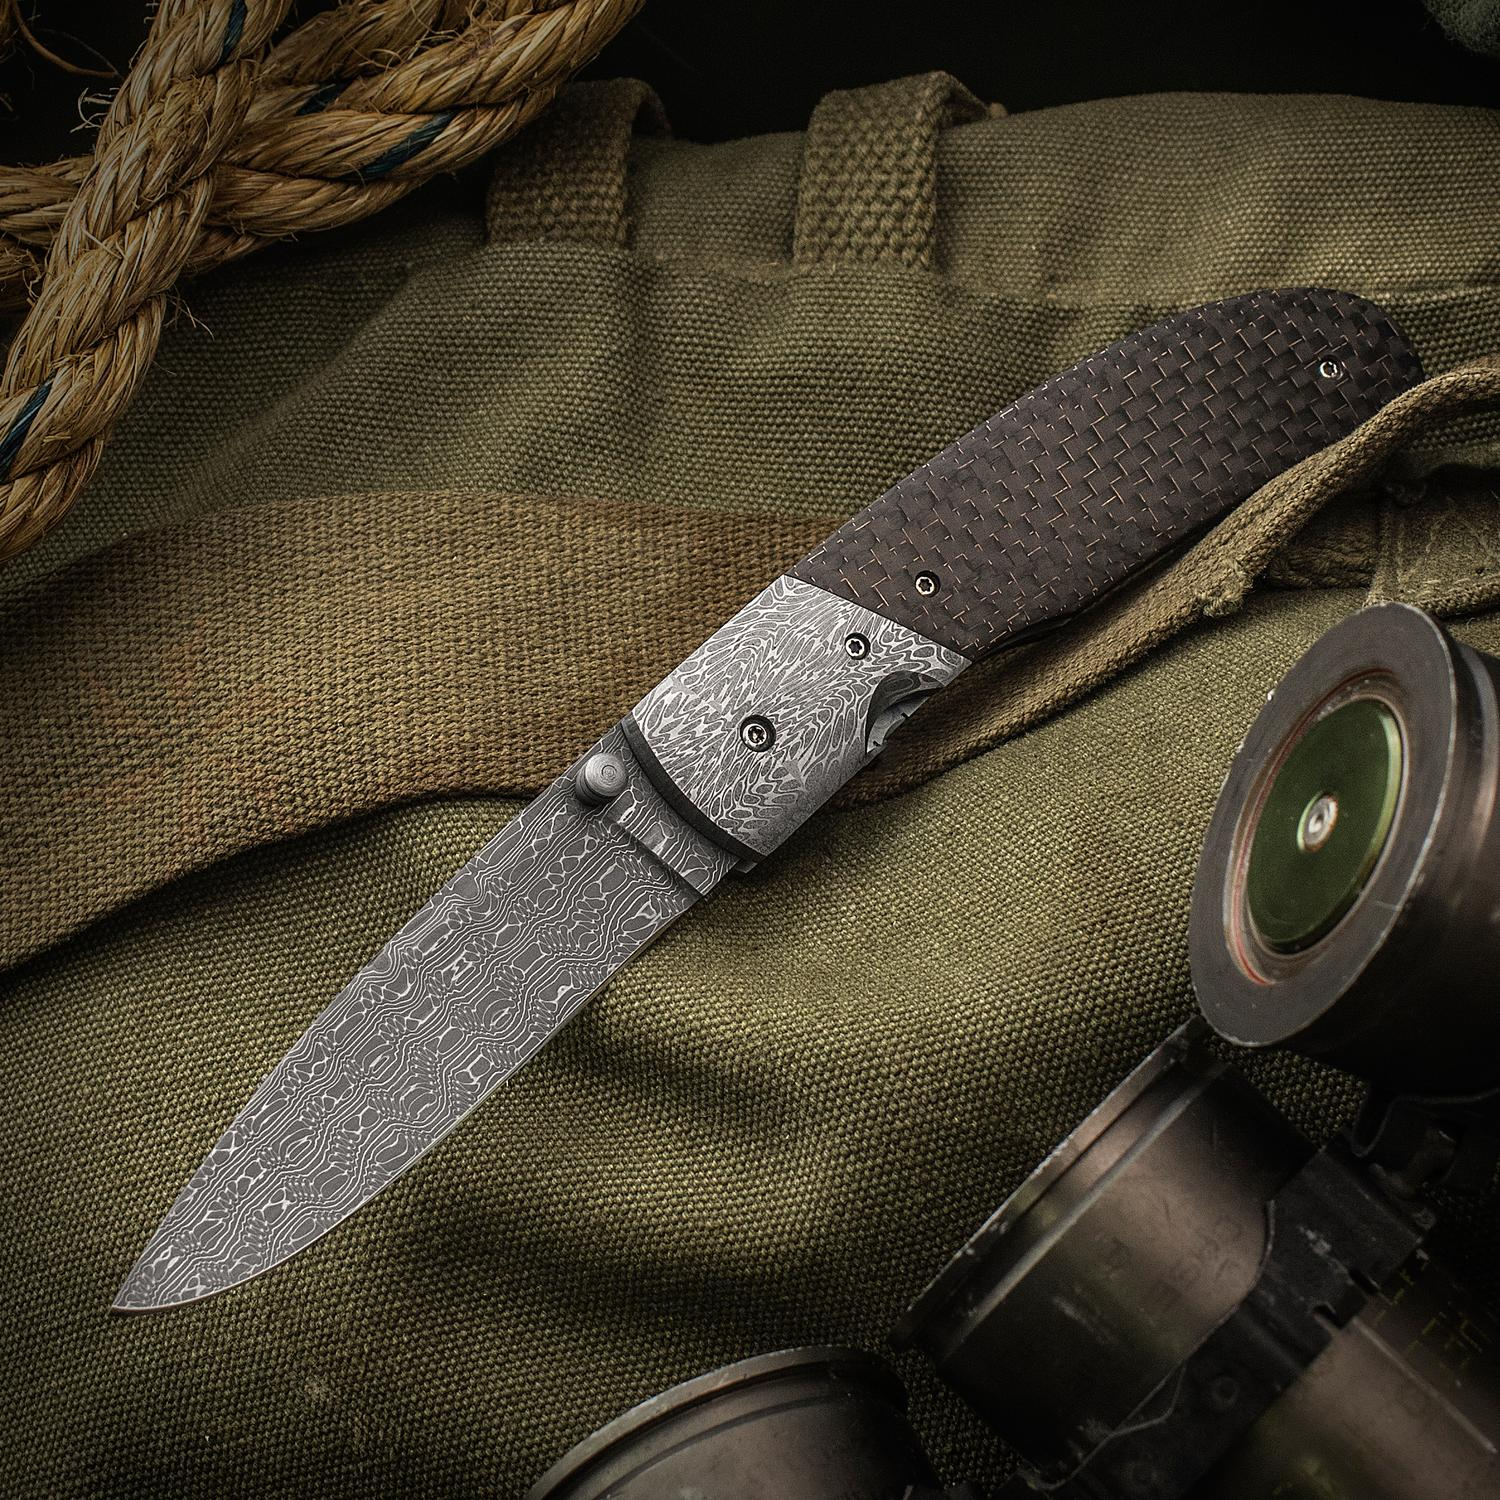 Robert Champion Custom Texas Wind Folding Knife 3.25 inch Nichols Reptilian Damascus Blade, Carbon Fiber Handles with Eggerling Damascus Bolsters